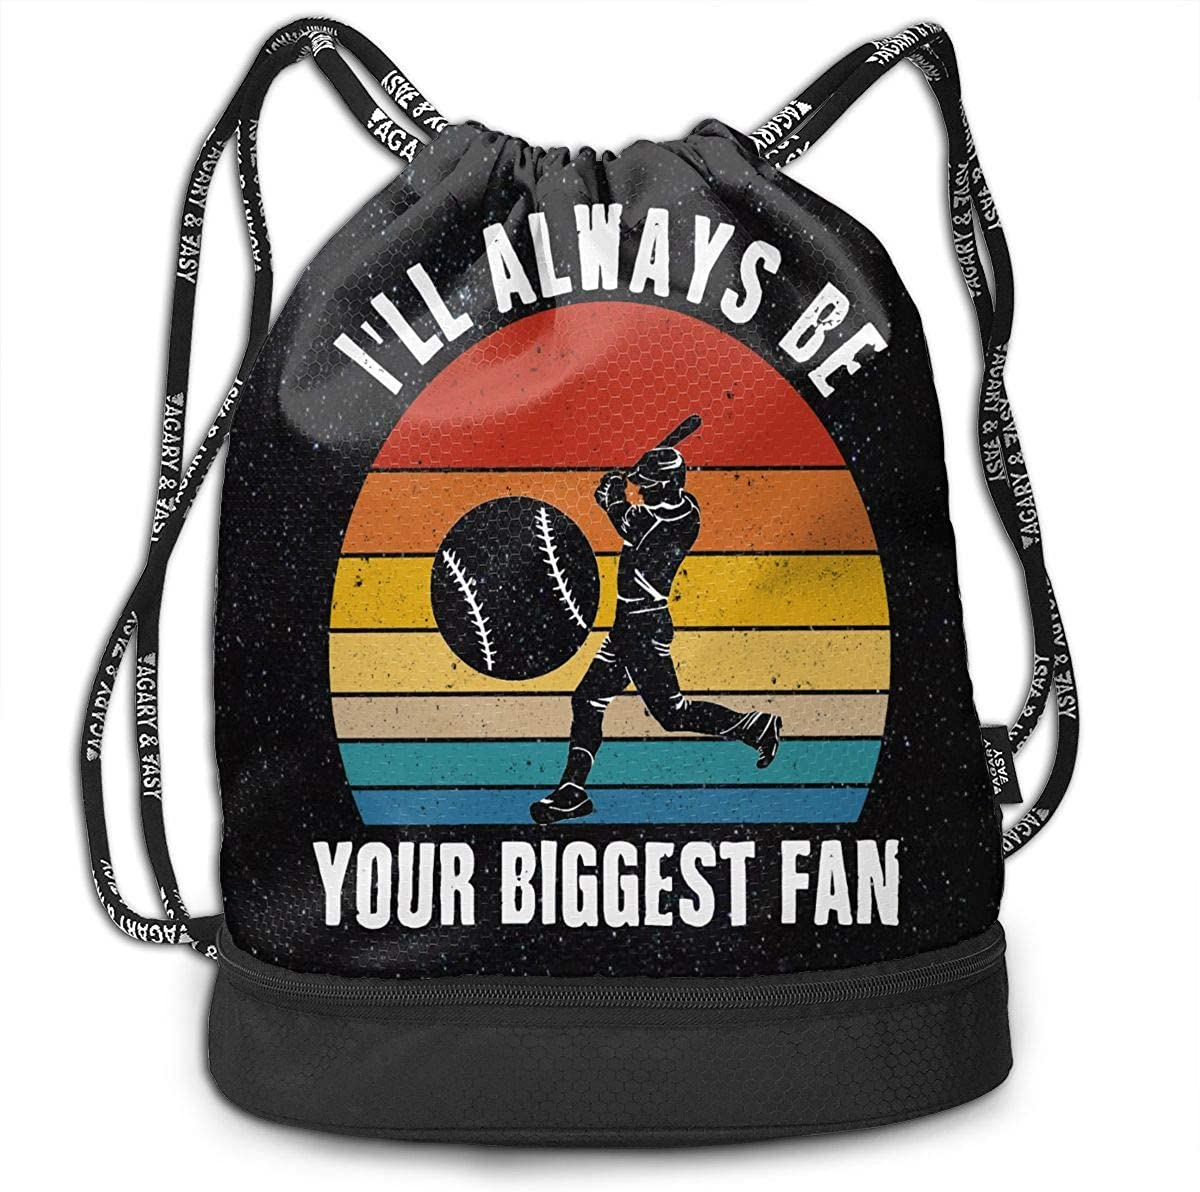 Xdfcvmalkwrj Unisex Mens Womans Ill Always Be Your Biggest Fan Durable Beam Backpack Gift